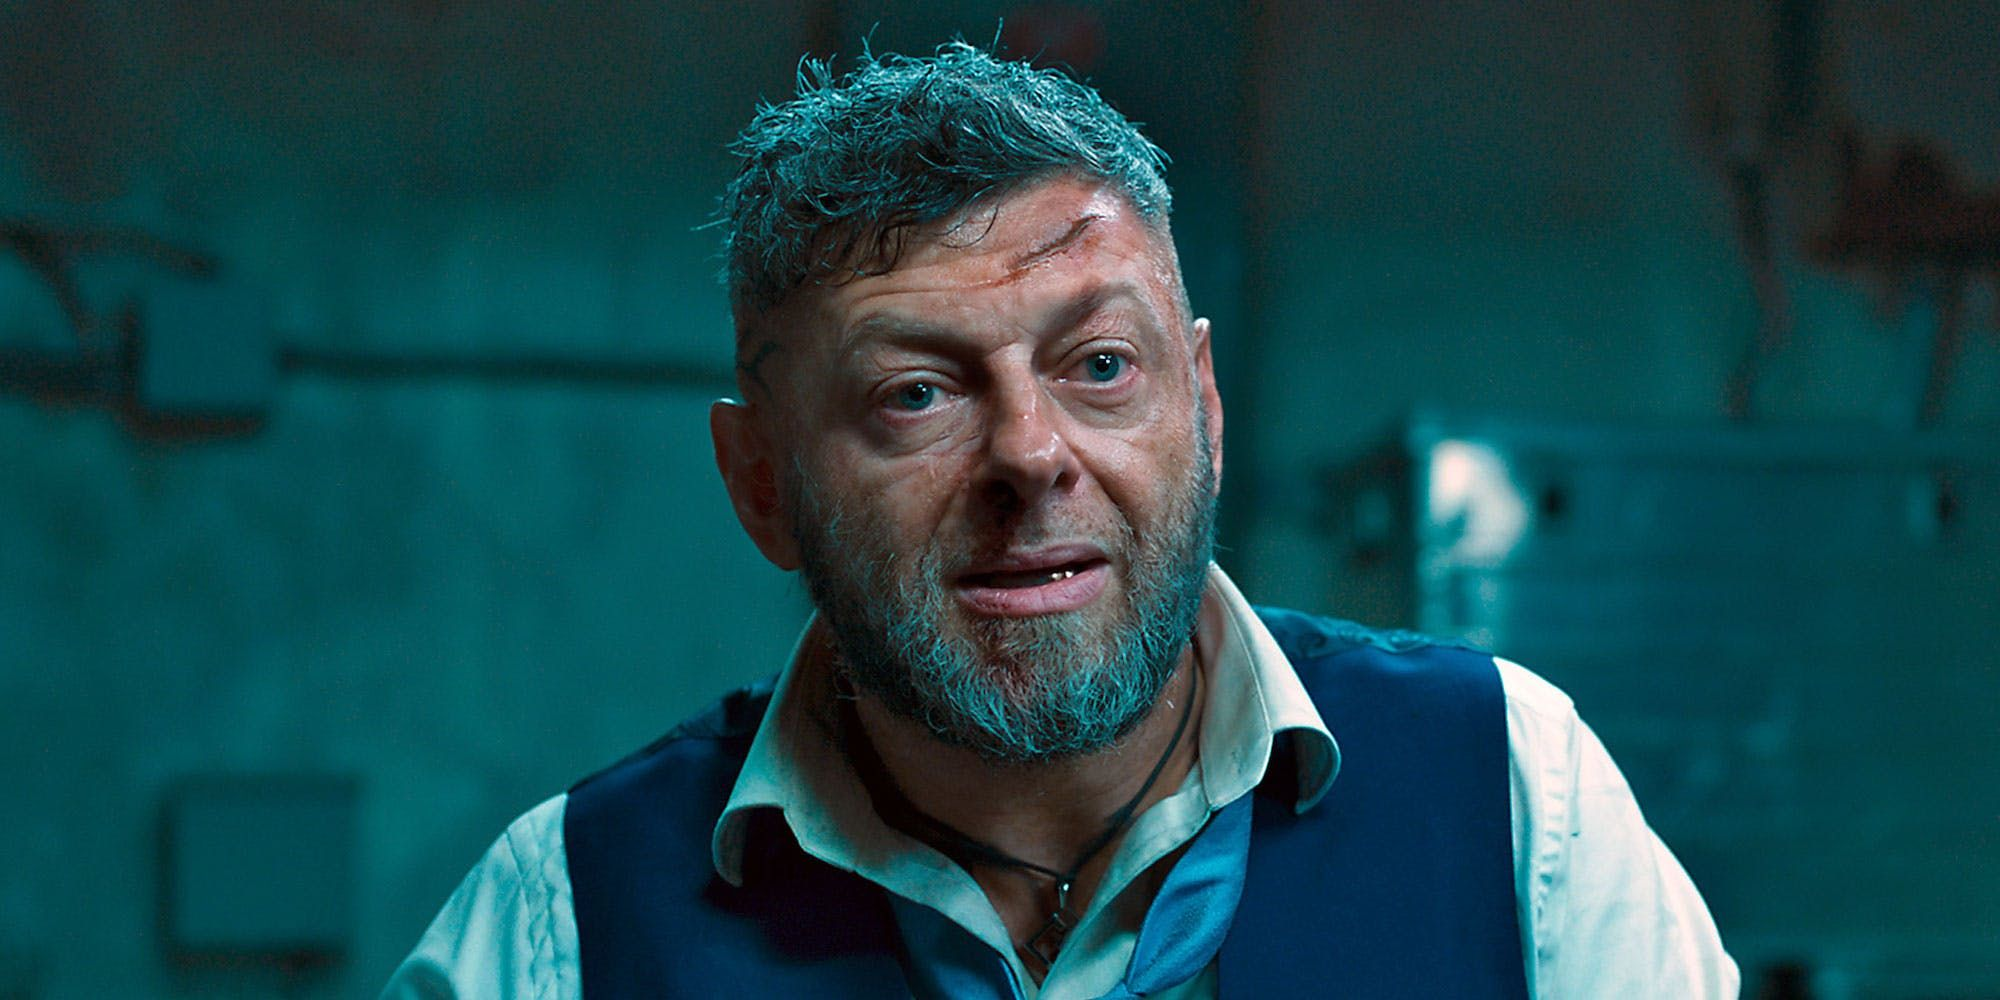 Lord of the Rings Star Andy Serkis Narrates New Hobbit Audiobook